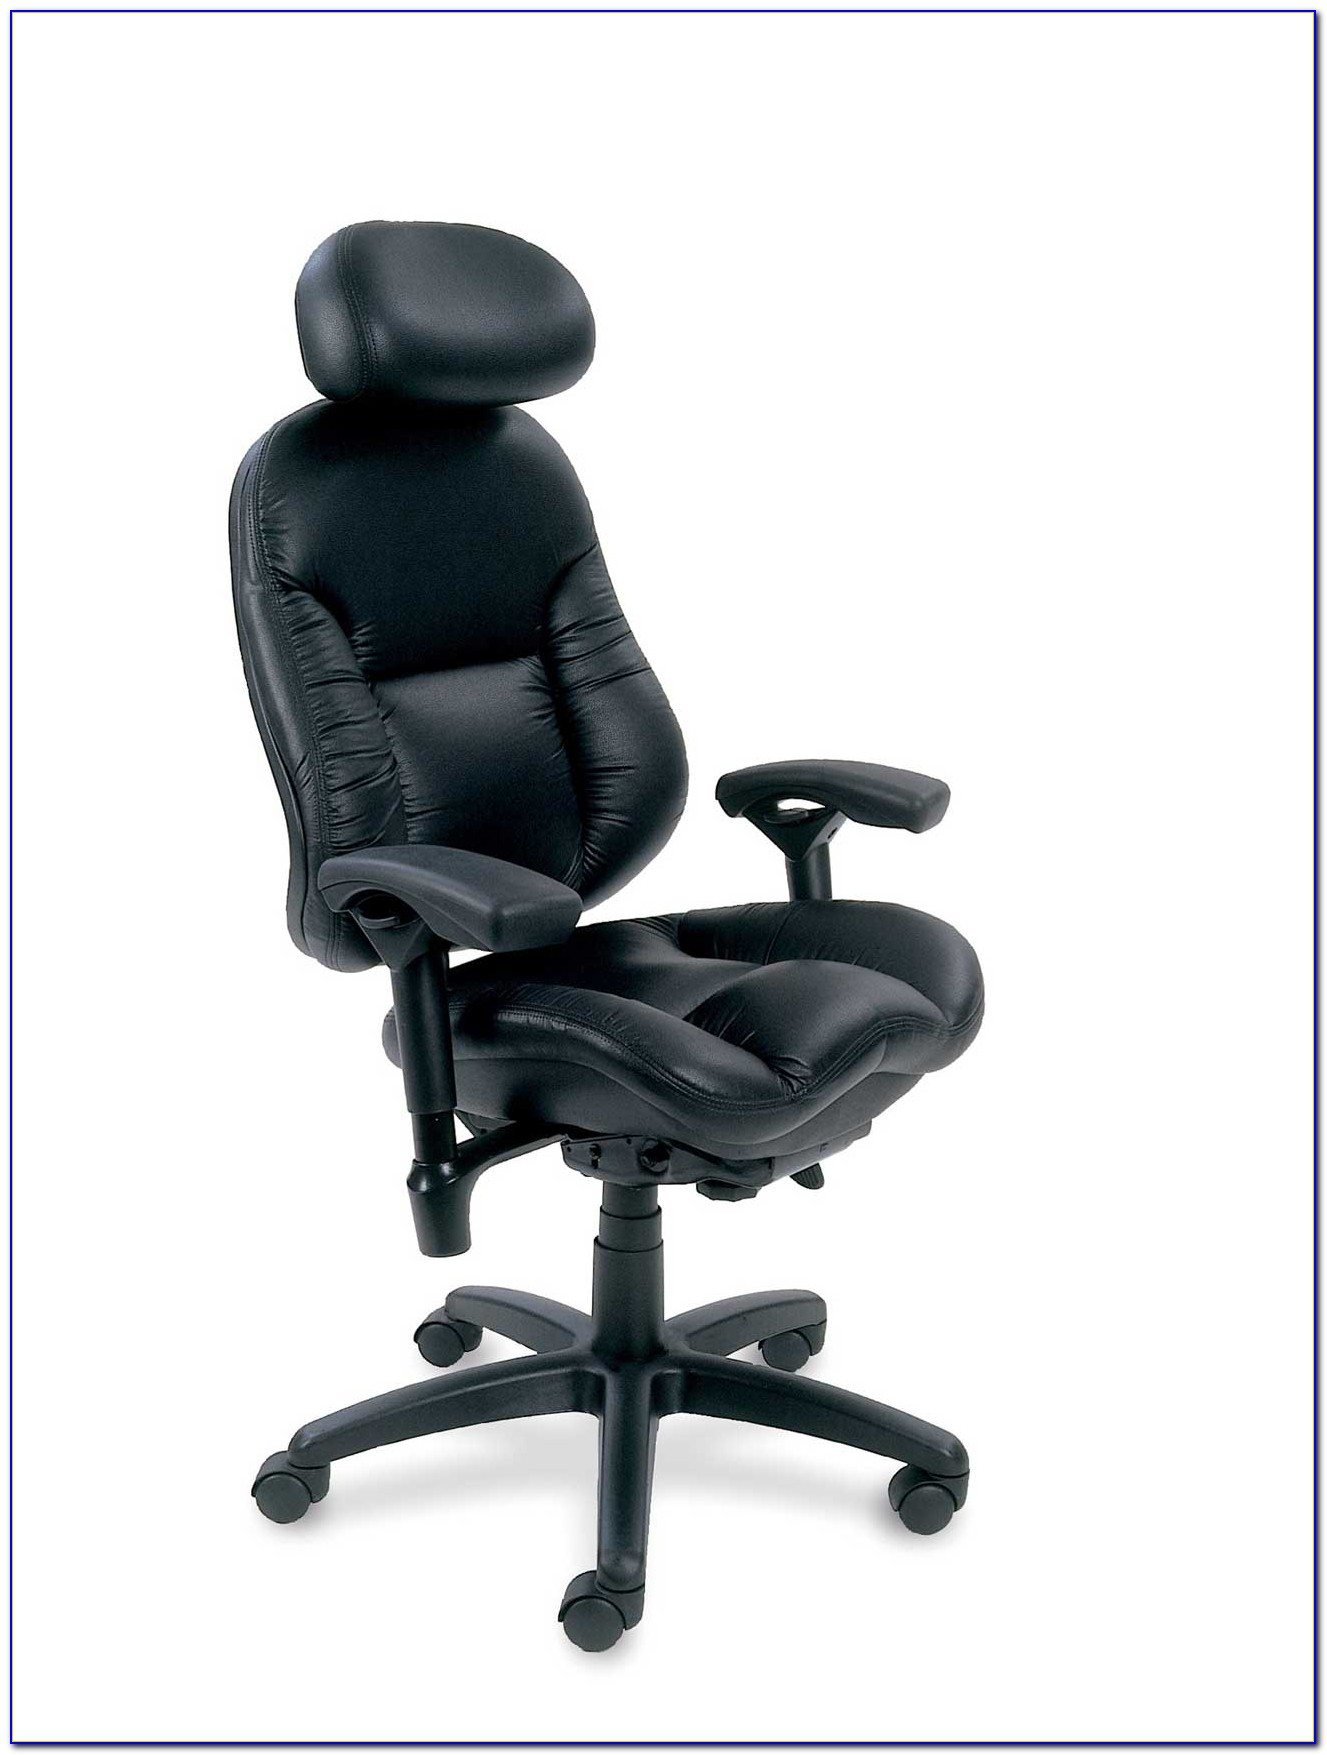 Most Comfortable Desk Chair 2014